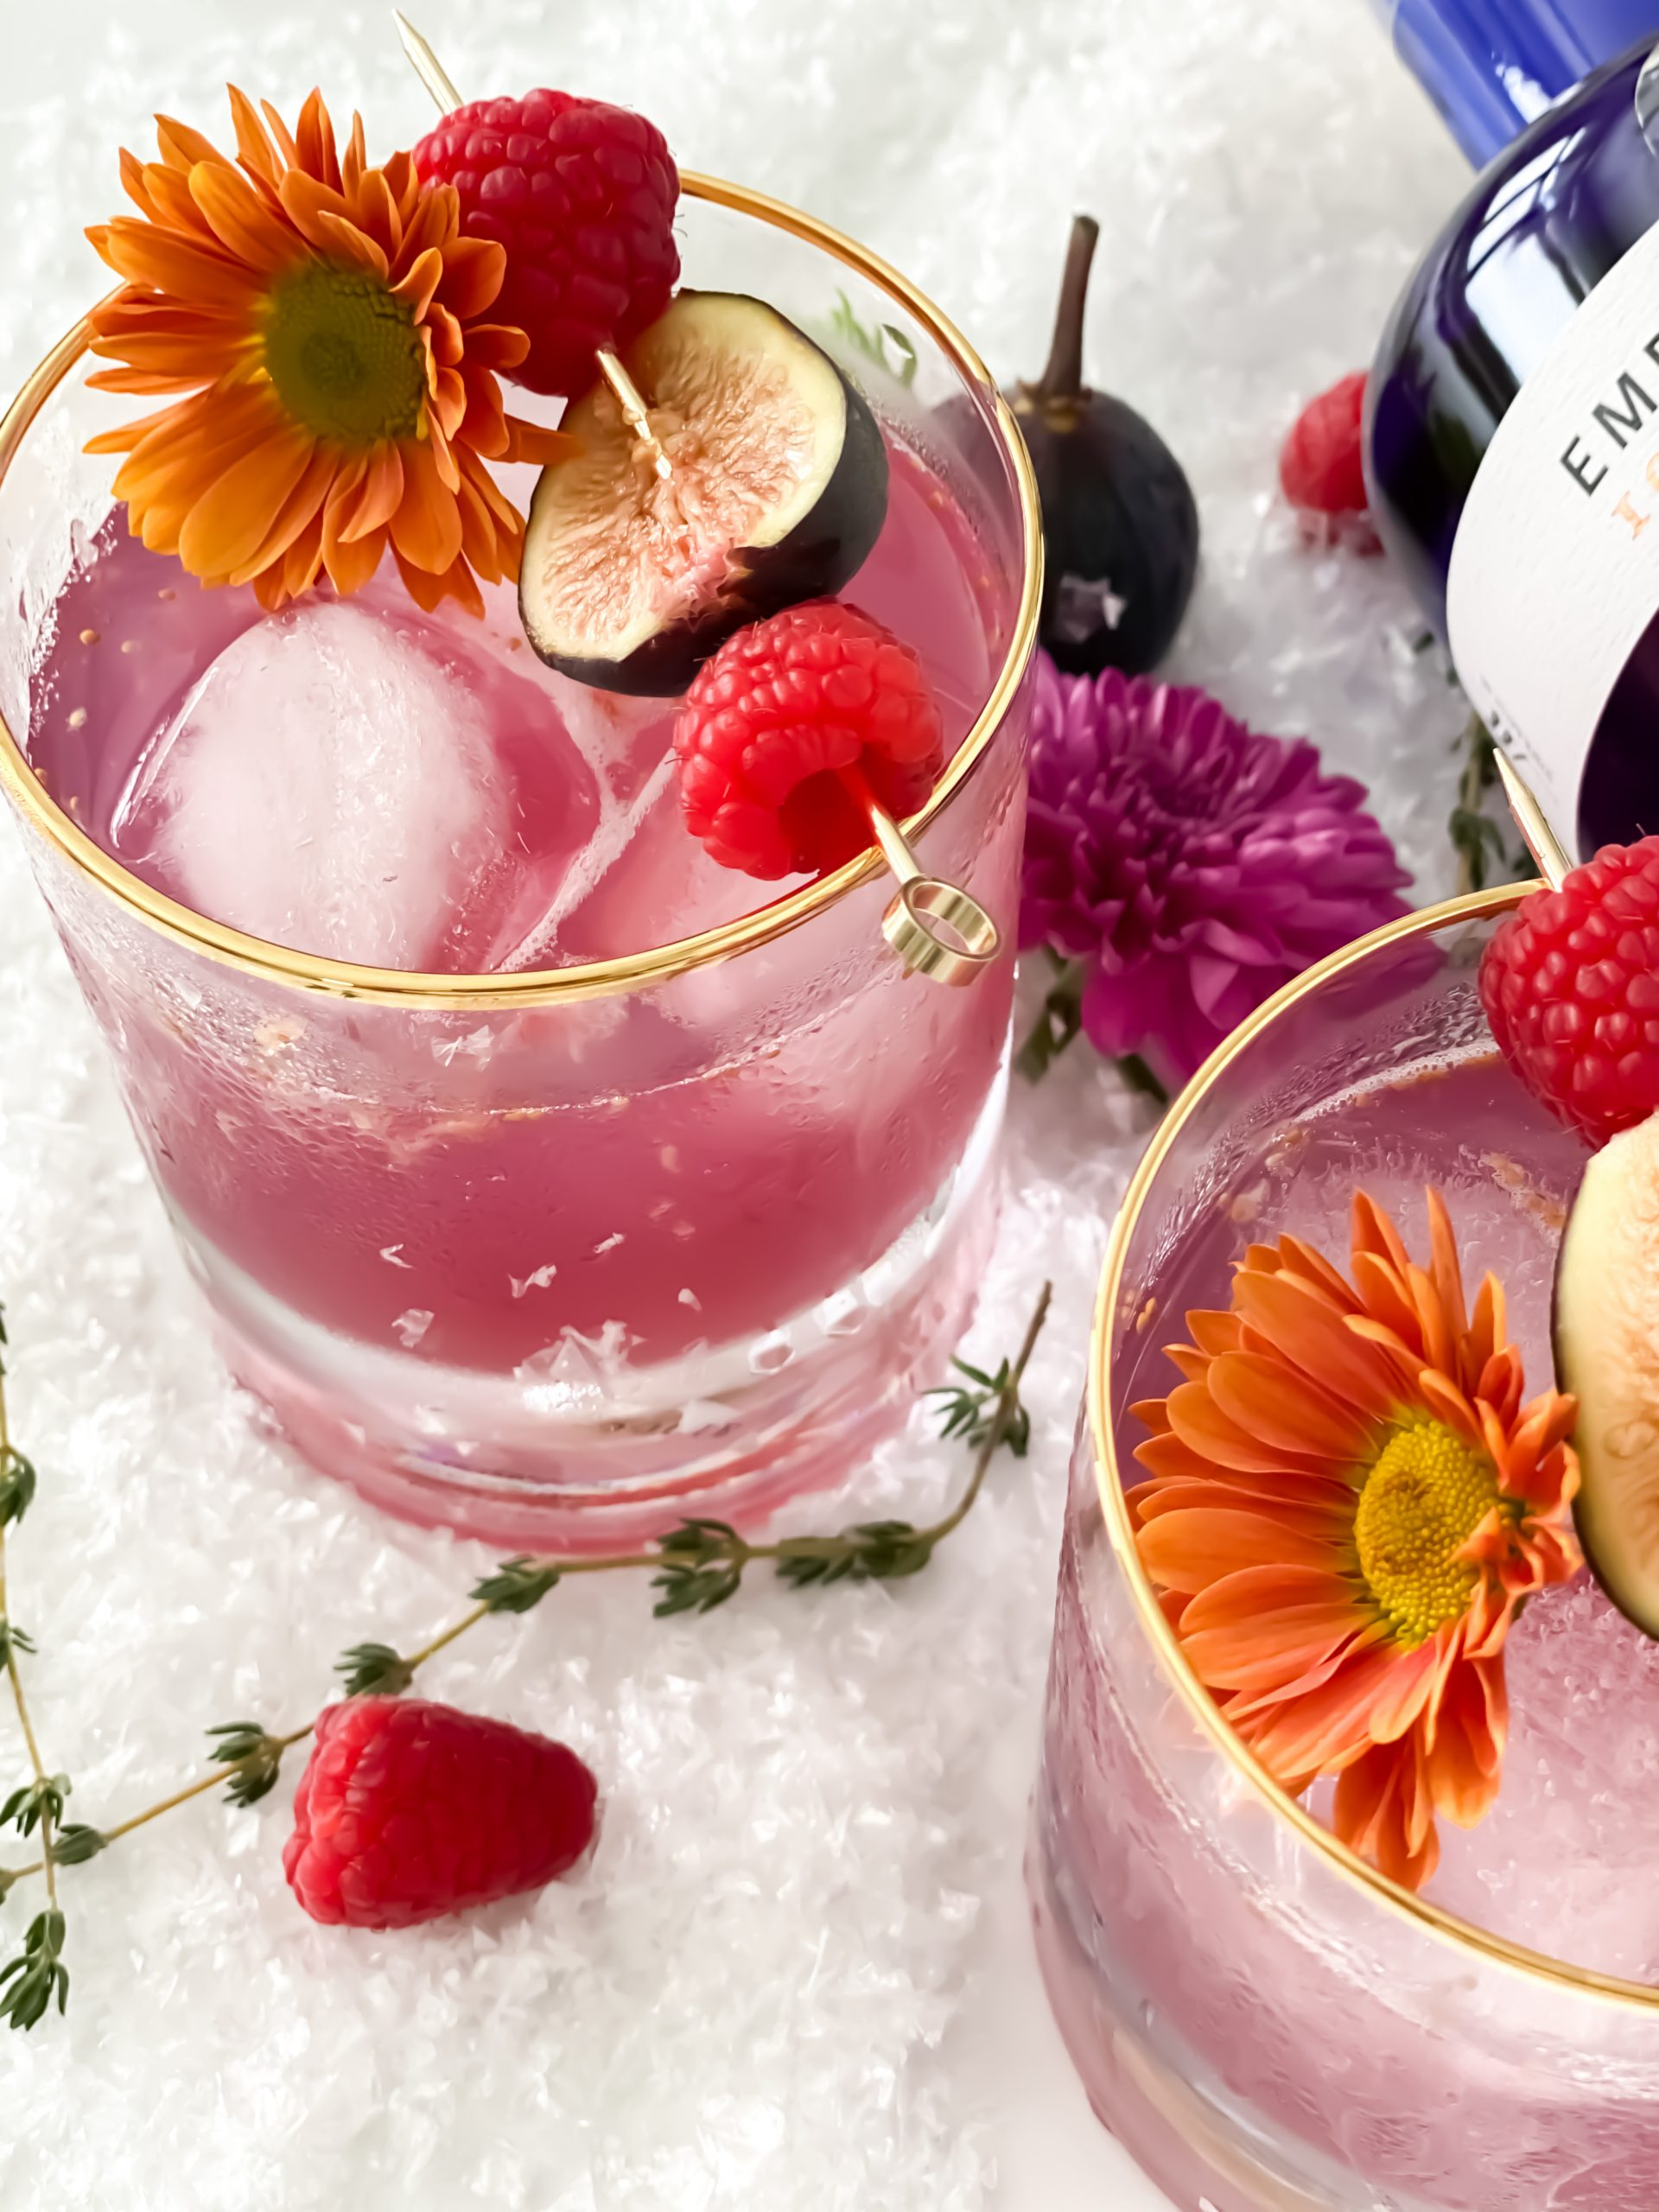 Empress Gin: A Bougie Remix of the Traditional Bees Knees